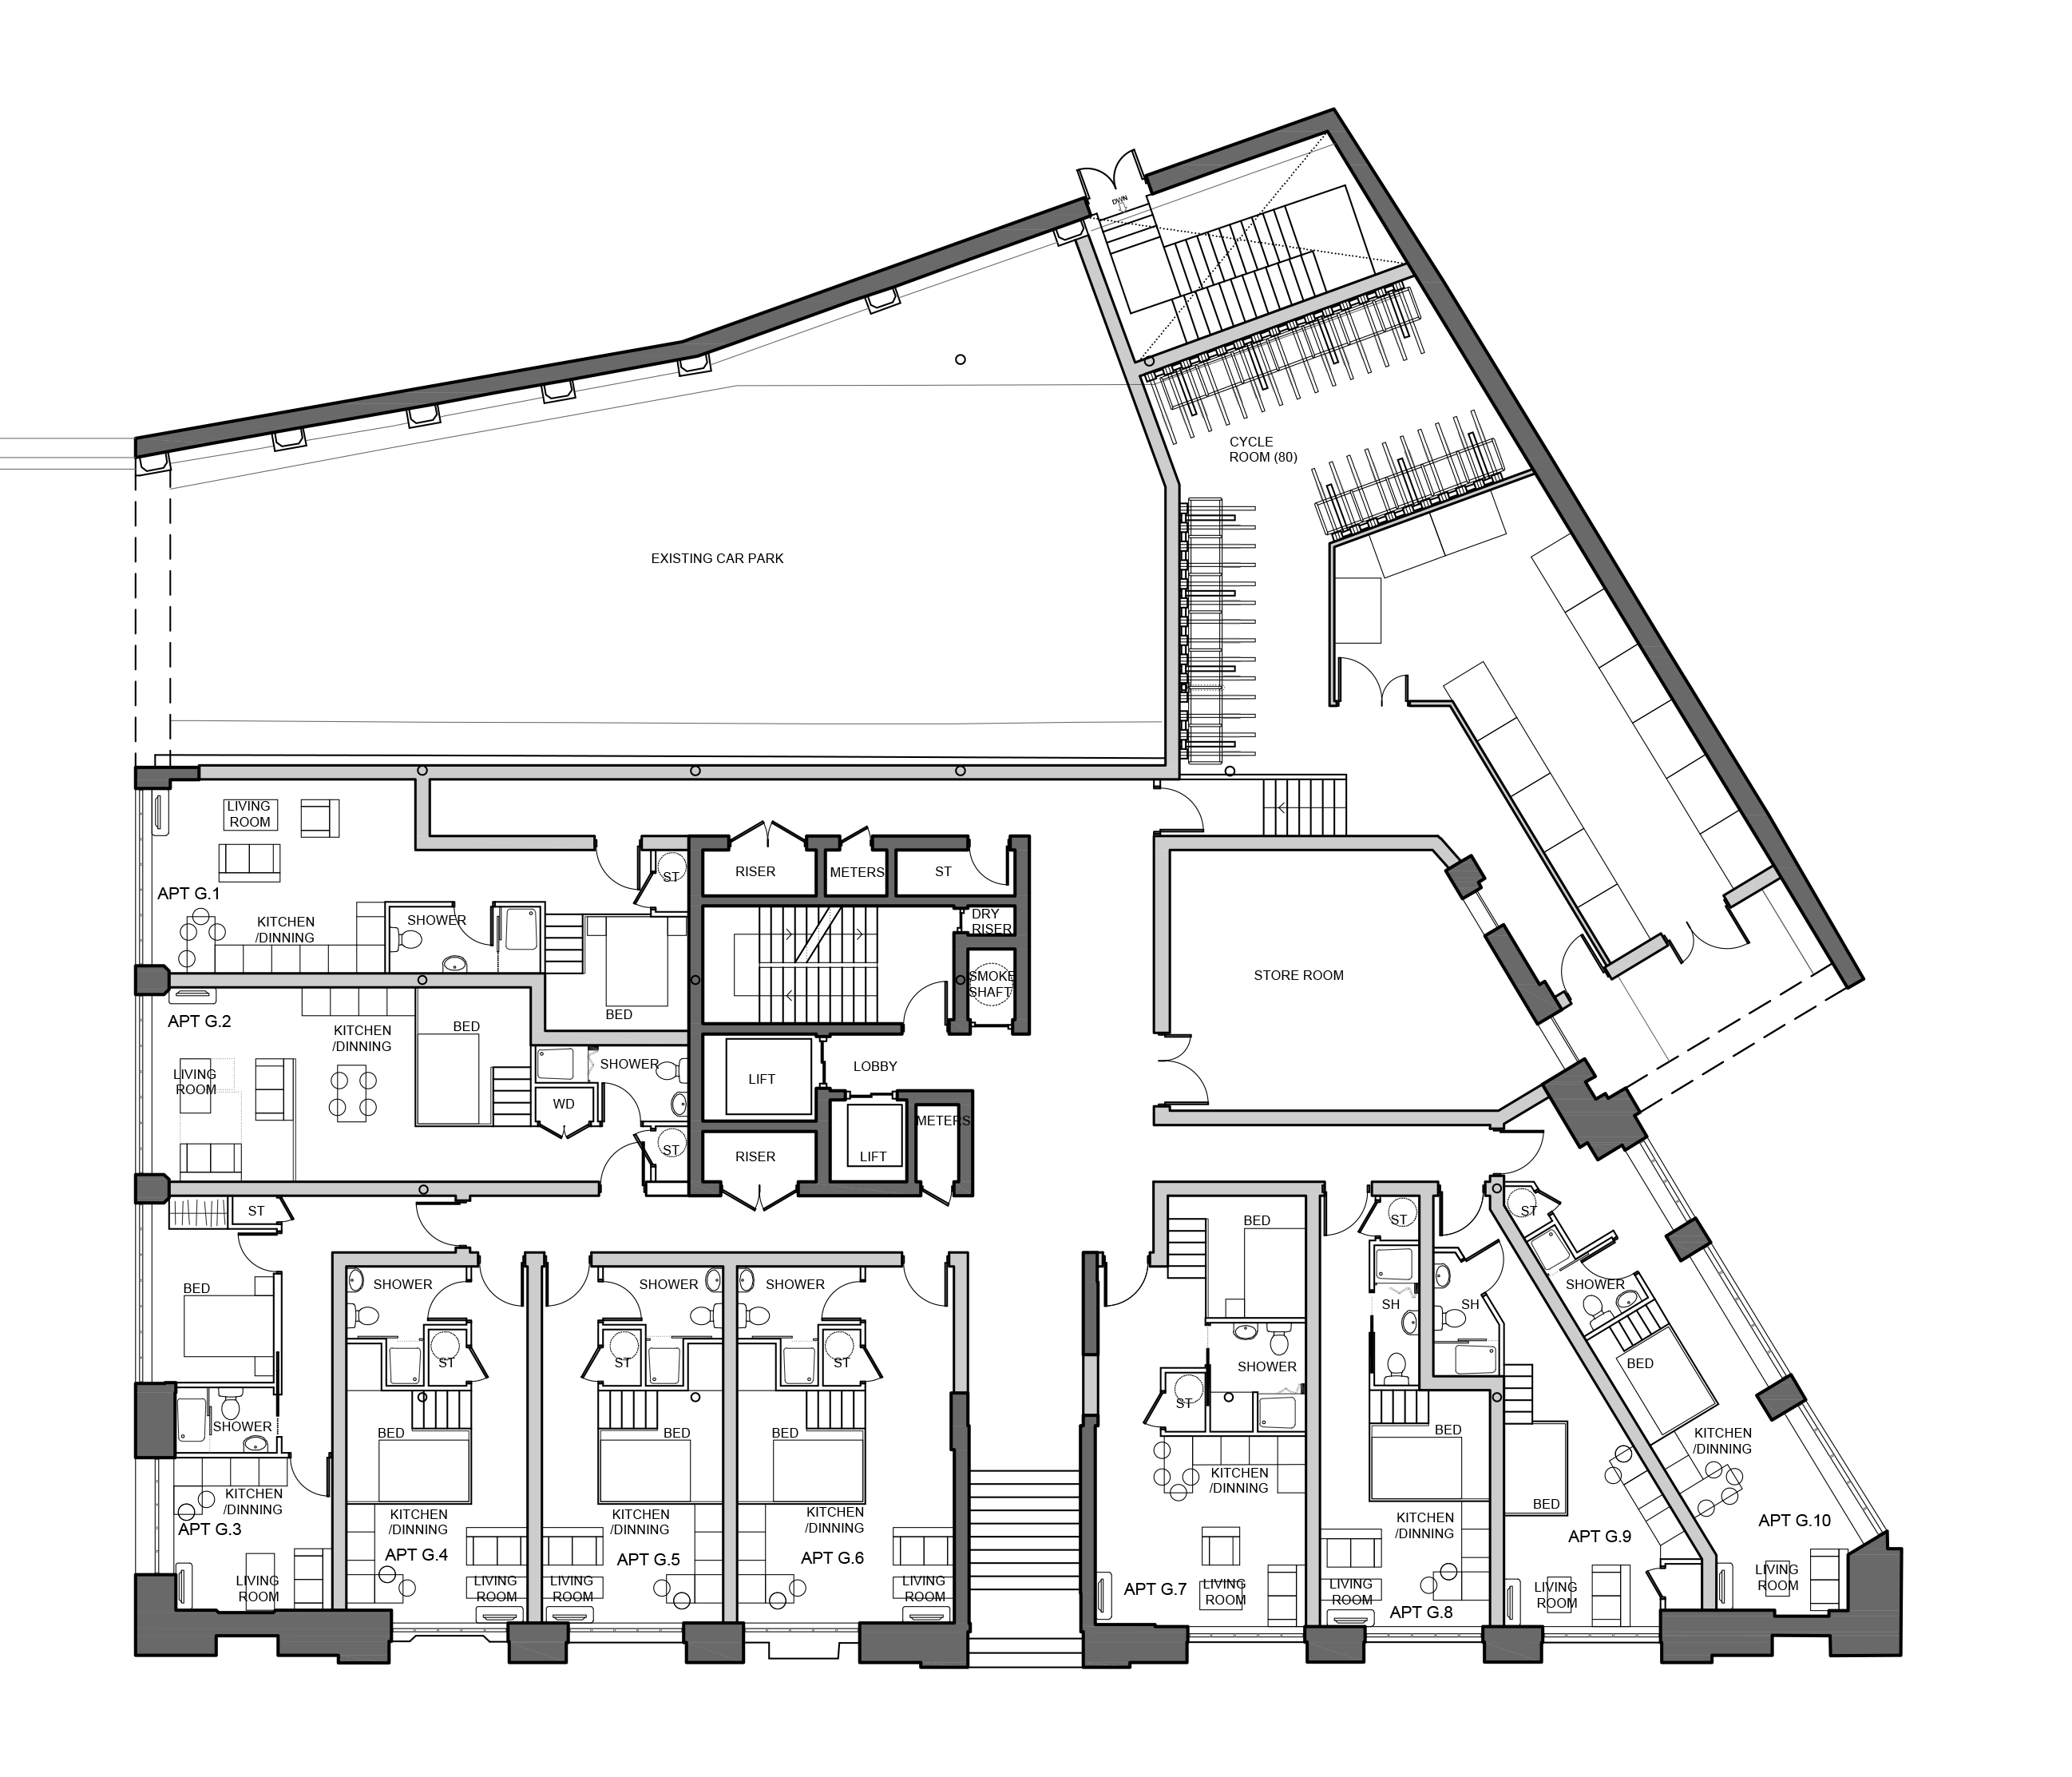 These are floor plans granted by manchester city council and are subject to minor change upon uk building regulation